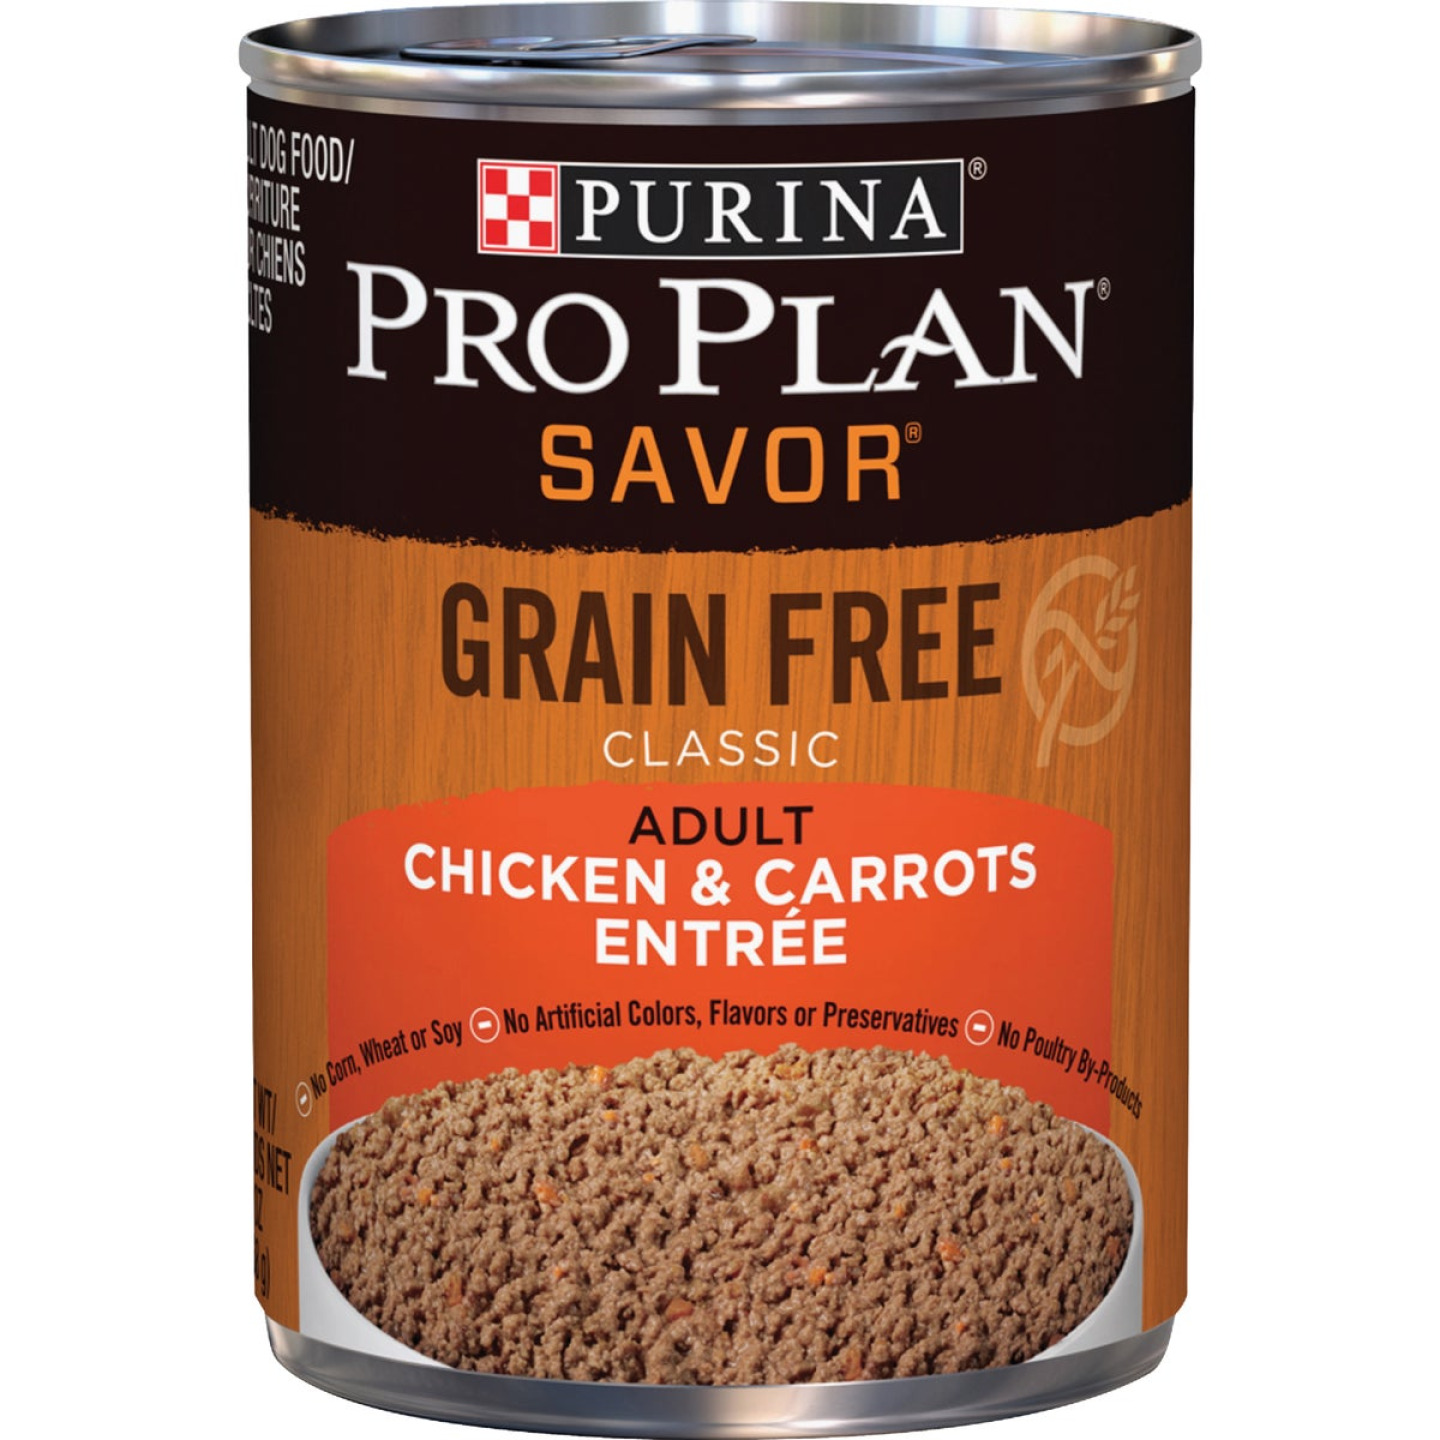 Purina Pro Plan Savor Chicken & Carrot Adult Grain Free Wet Dog Food, 13 Oz. Image 1